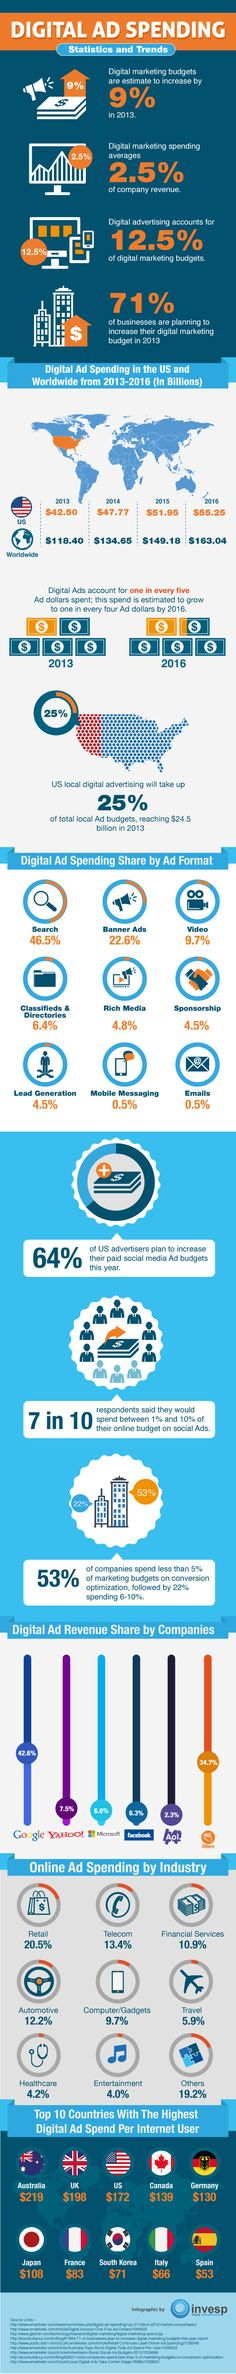 Digital ad spending: Statistics and trends [infographic]